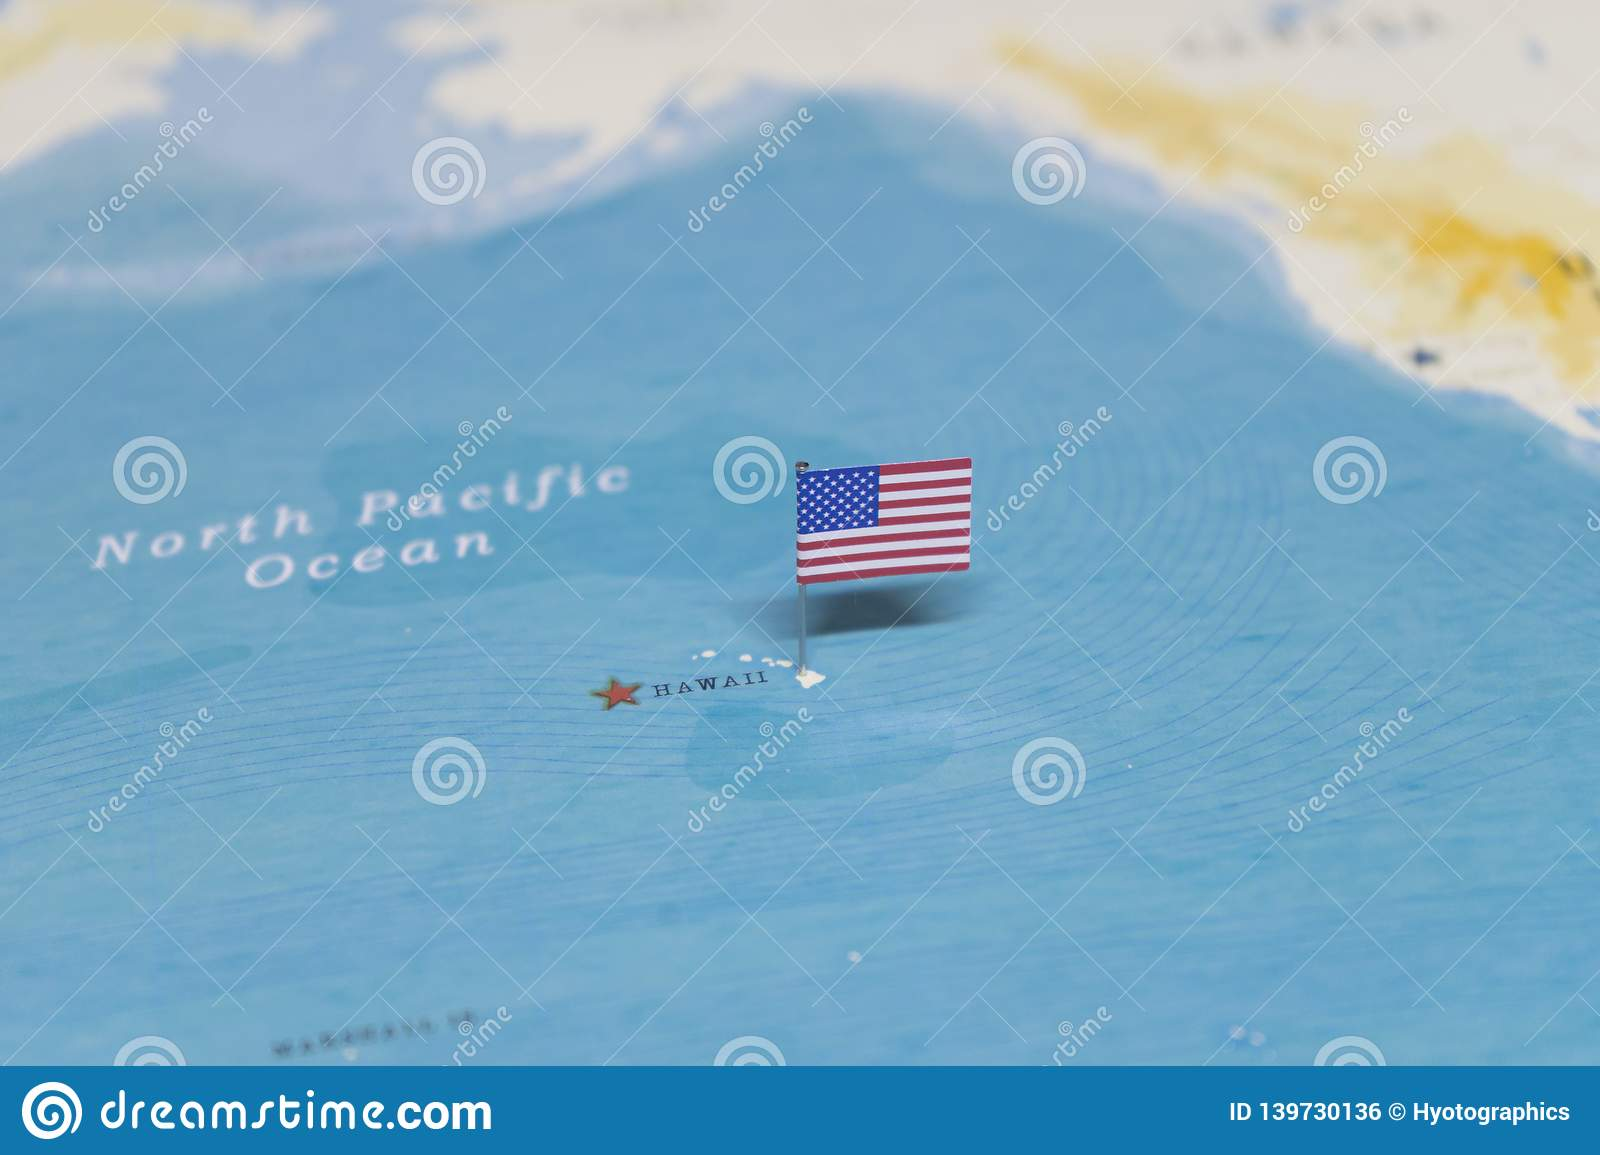 The Flag of the United States on the hawaii in the world map